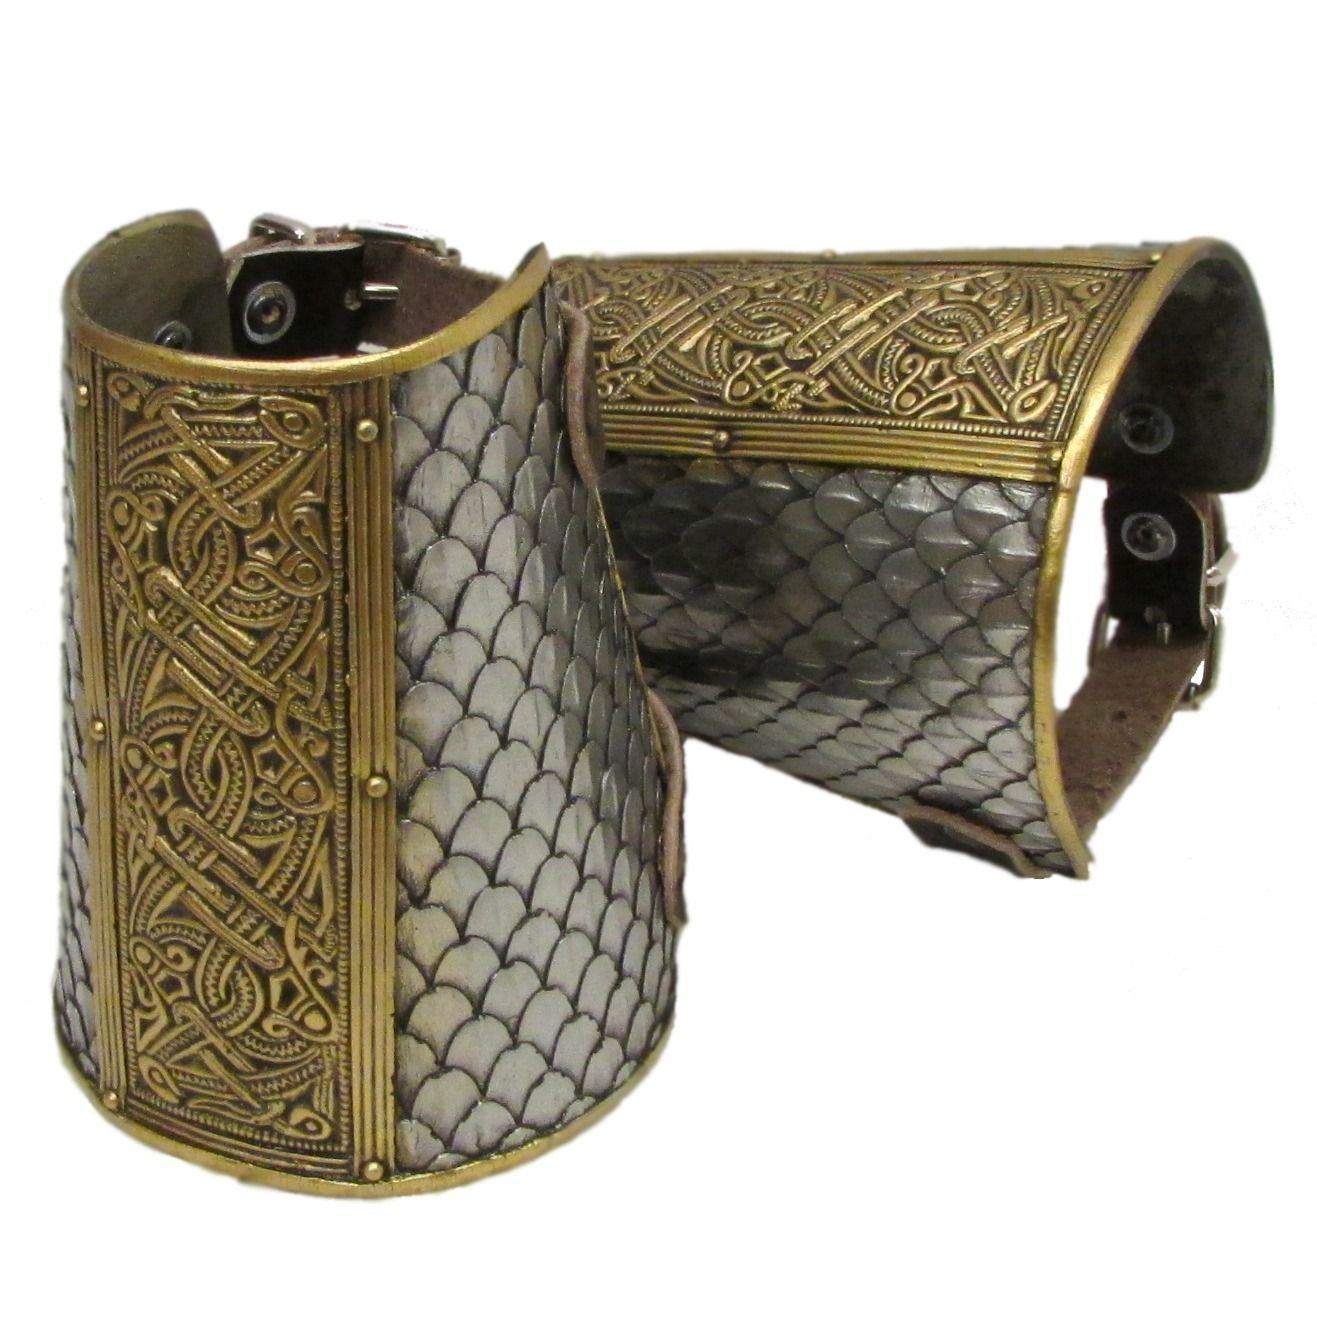 Wyrmwick scaled celtic larp cuffs